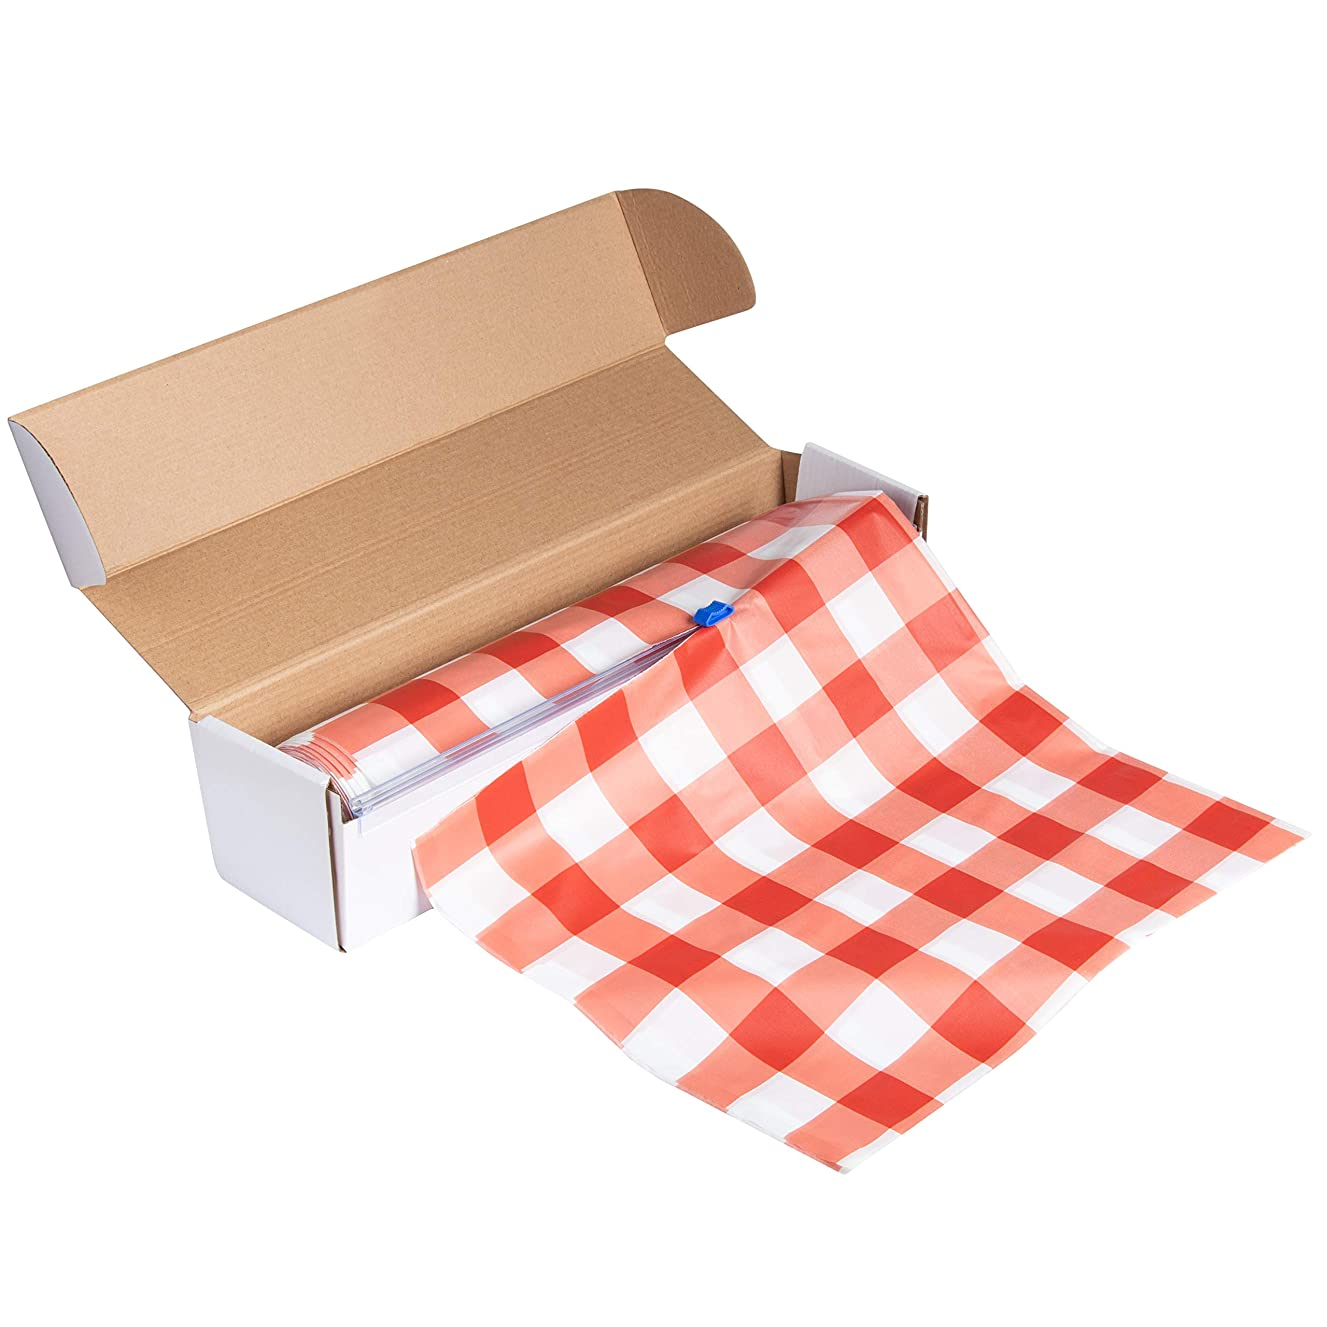 Red Plastic Tablecloth Roll - 98 Feet x 54 Inches Disposable Table Cover On a Roll with Self-Cutter Box Dispenser, Fits 4.5 Feet Wide Tables, Picnic, Indoor Outdoor Party Supplies, Red Gingham